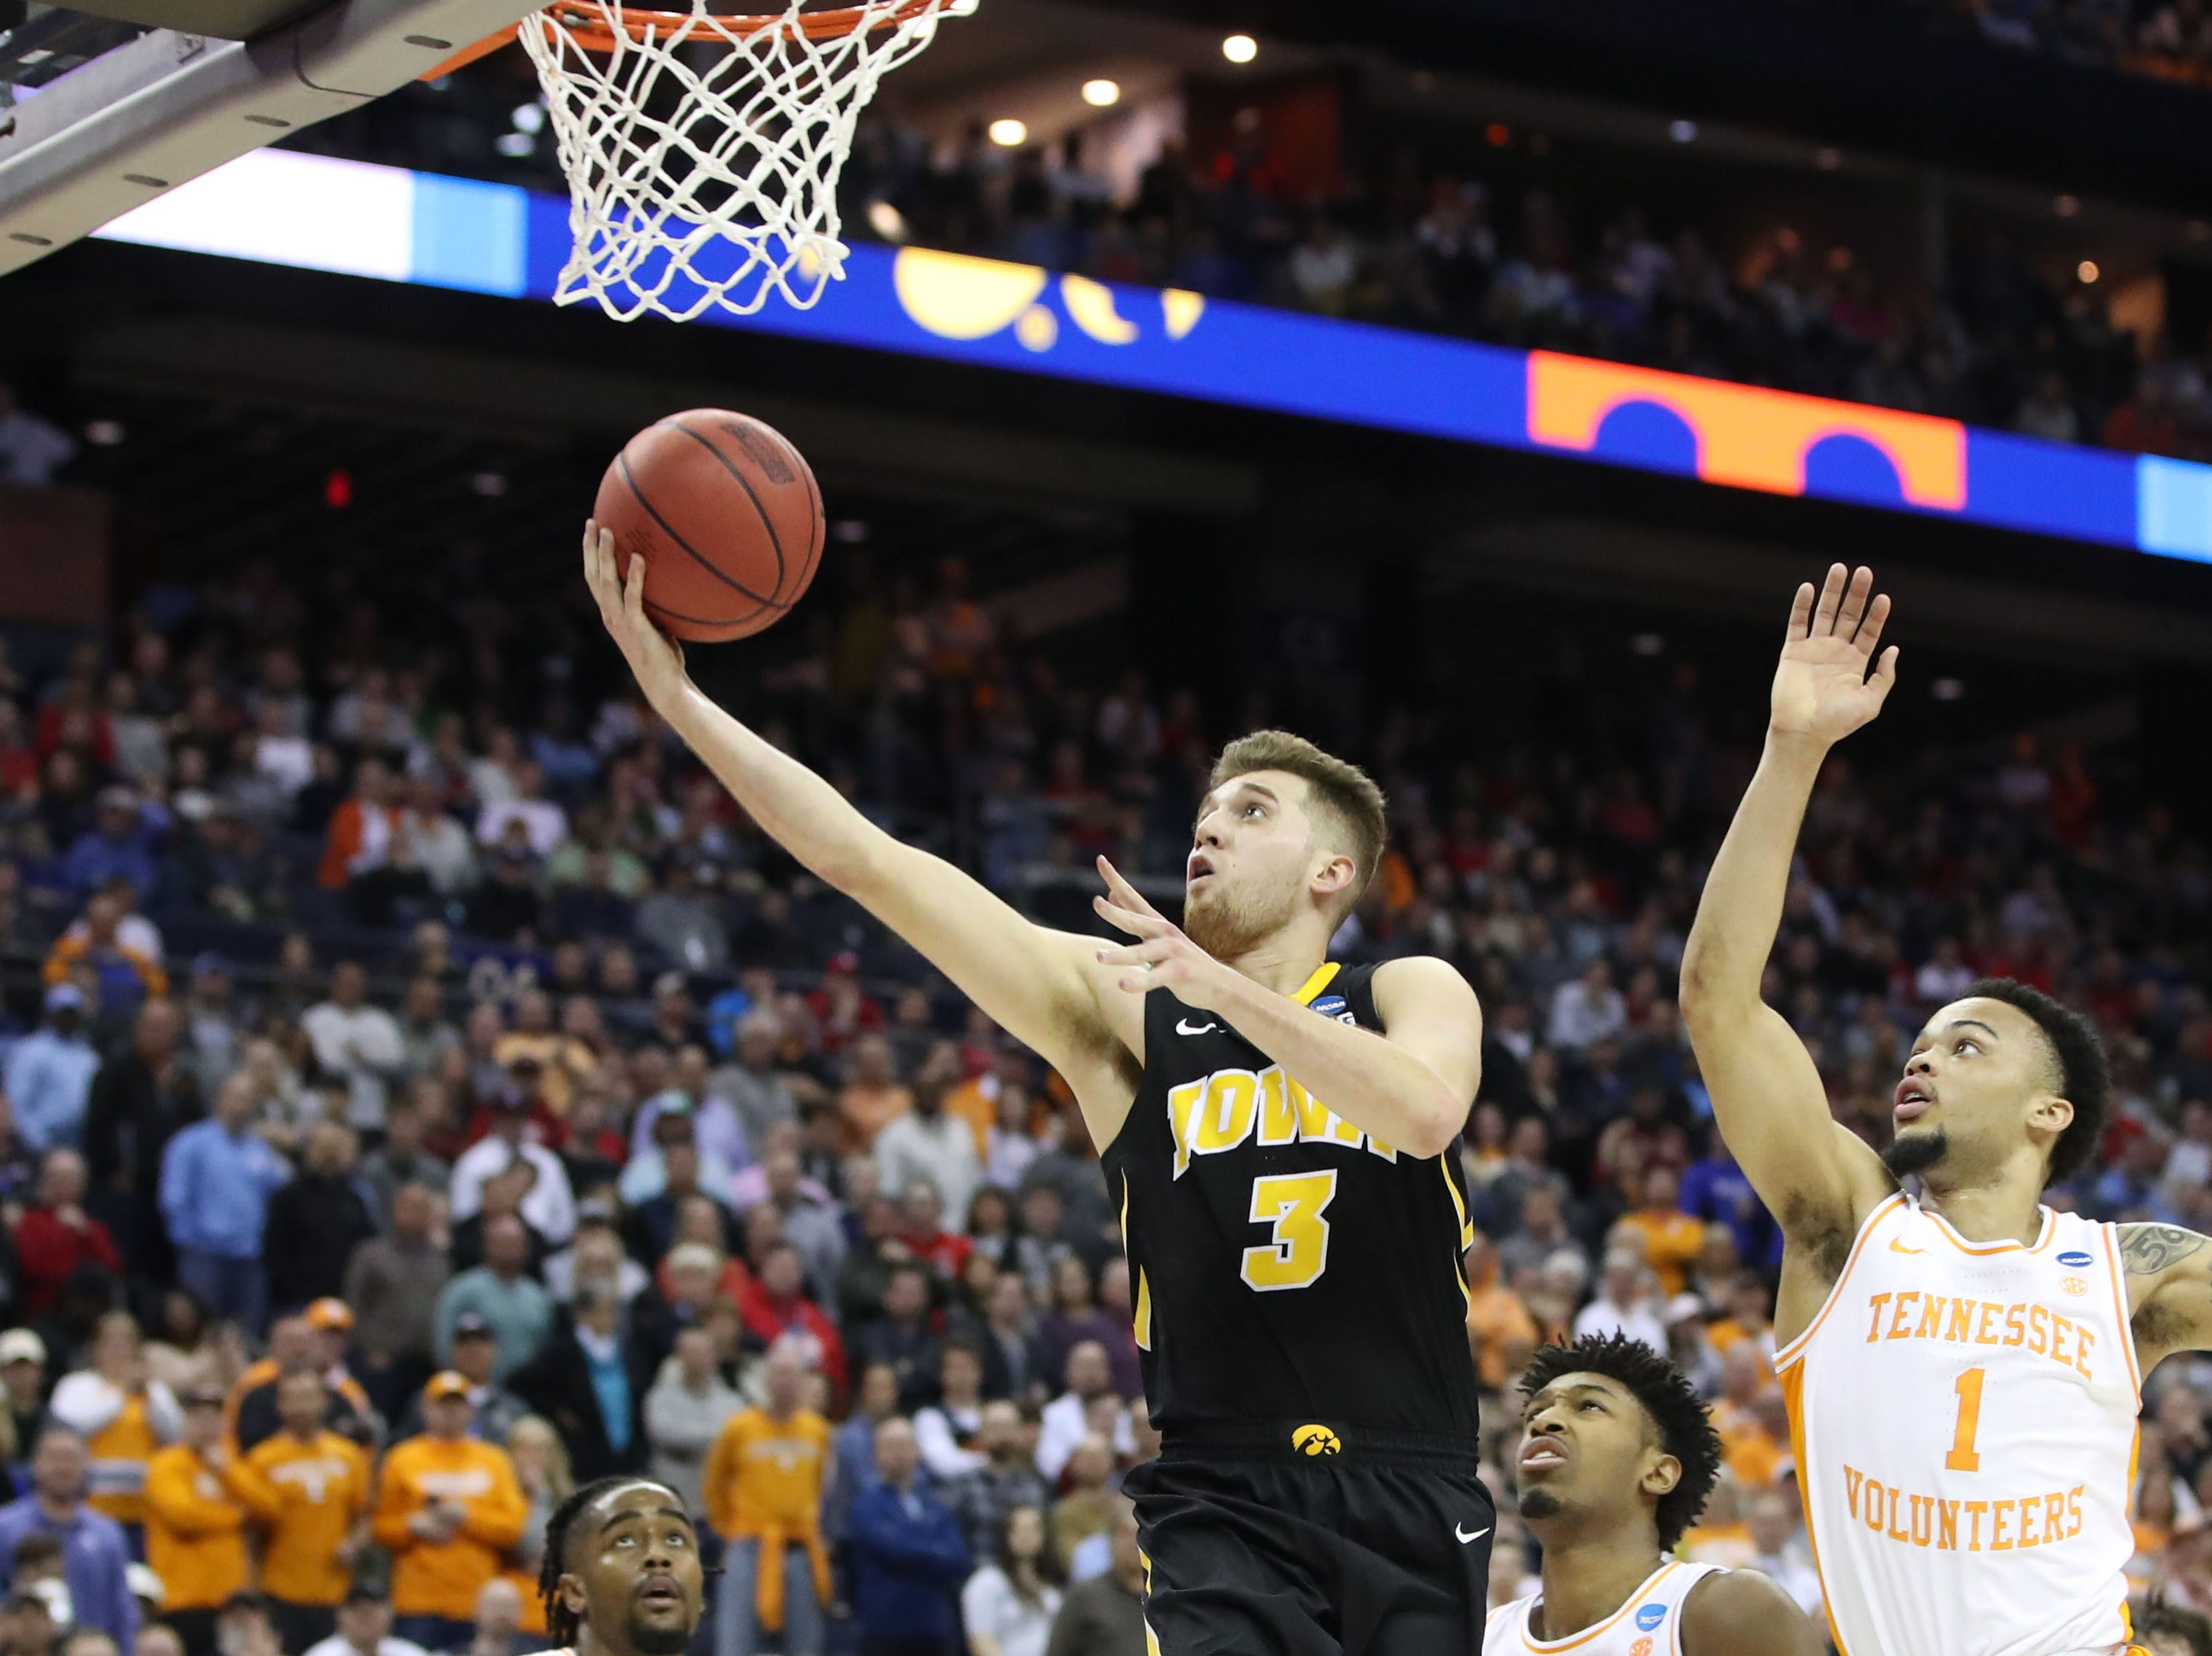 Iowa Hawkeyes guard Jordan Bohannon (3) goes to the basket defended by Tennessee Volunteers guard Lamonte Turner (1) in overtime  play in the second round of the 2019 NCAA Tournament at Nationwide Arena.